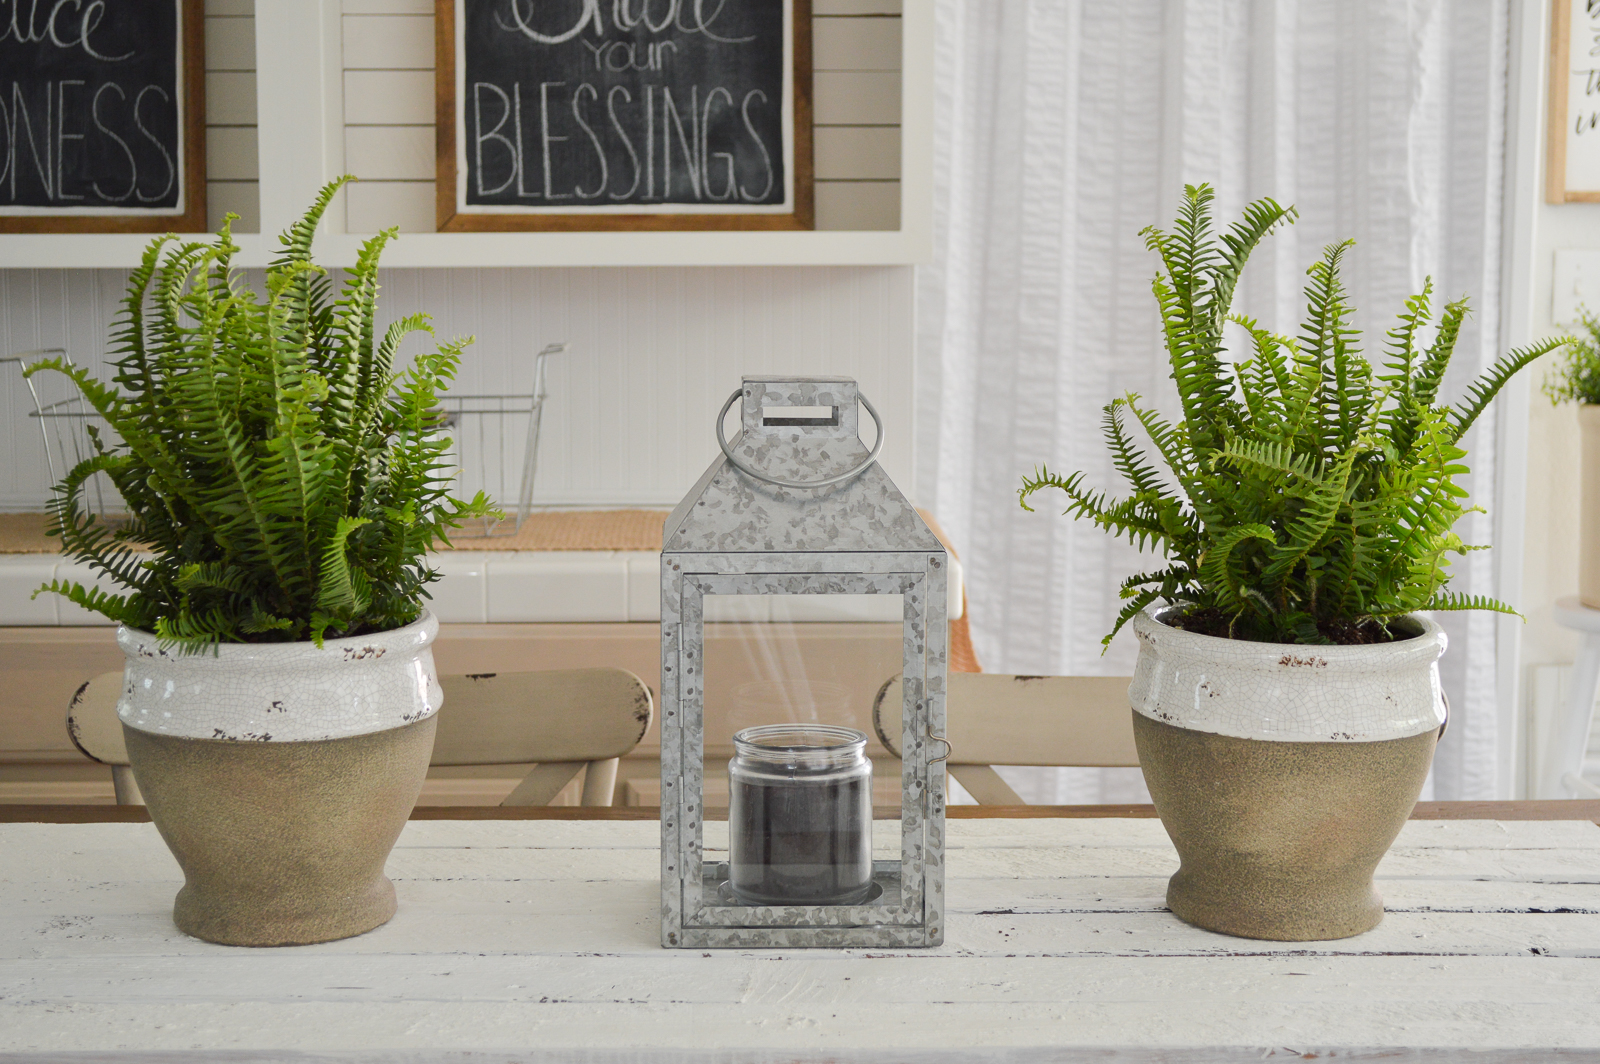 Outdoor In Spring Home Decor and Furniture Ideas #sponsored with Better Homes & Gardens at Walmart | concrete potted ferns, farm table, galvanized lantern